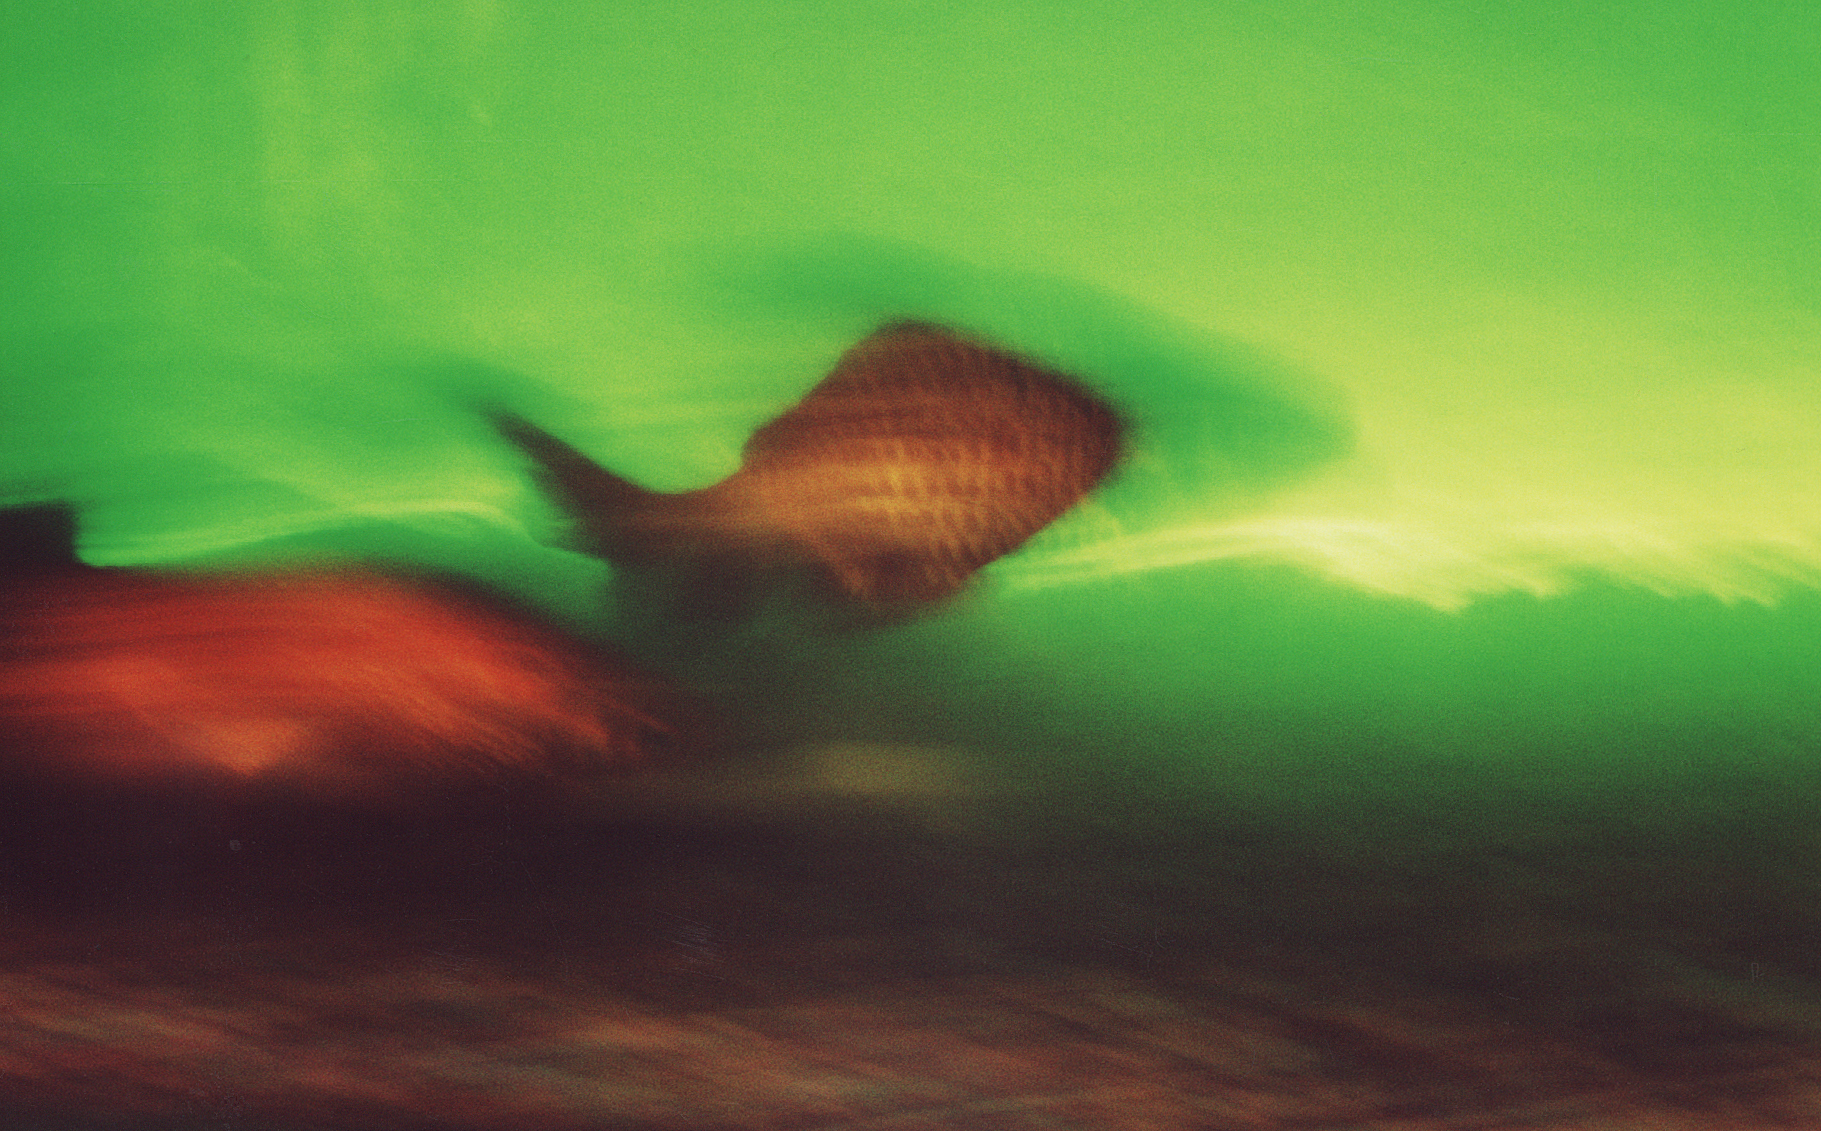 Motion Blur: Fish